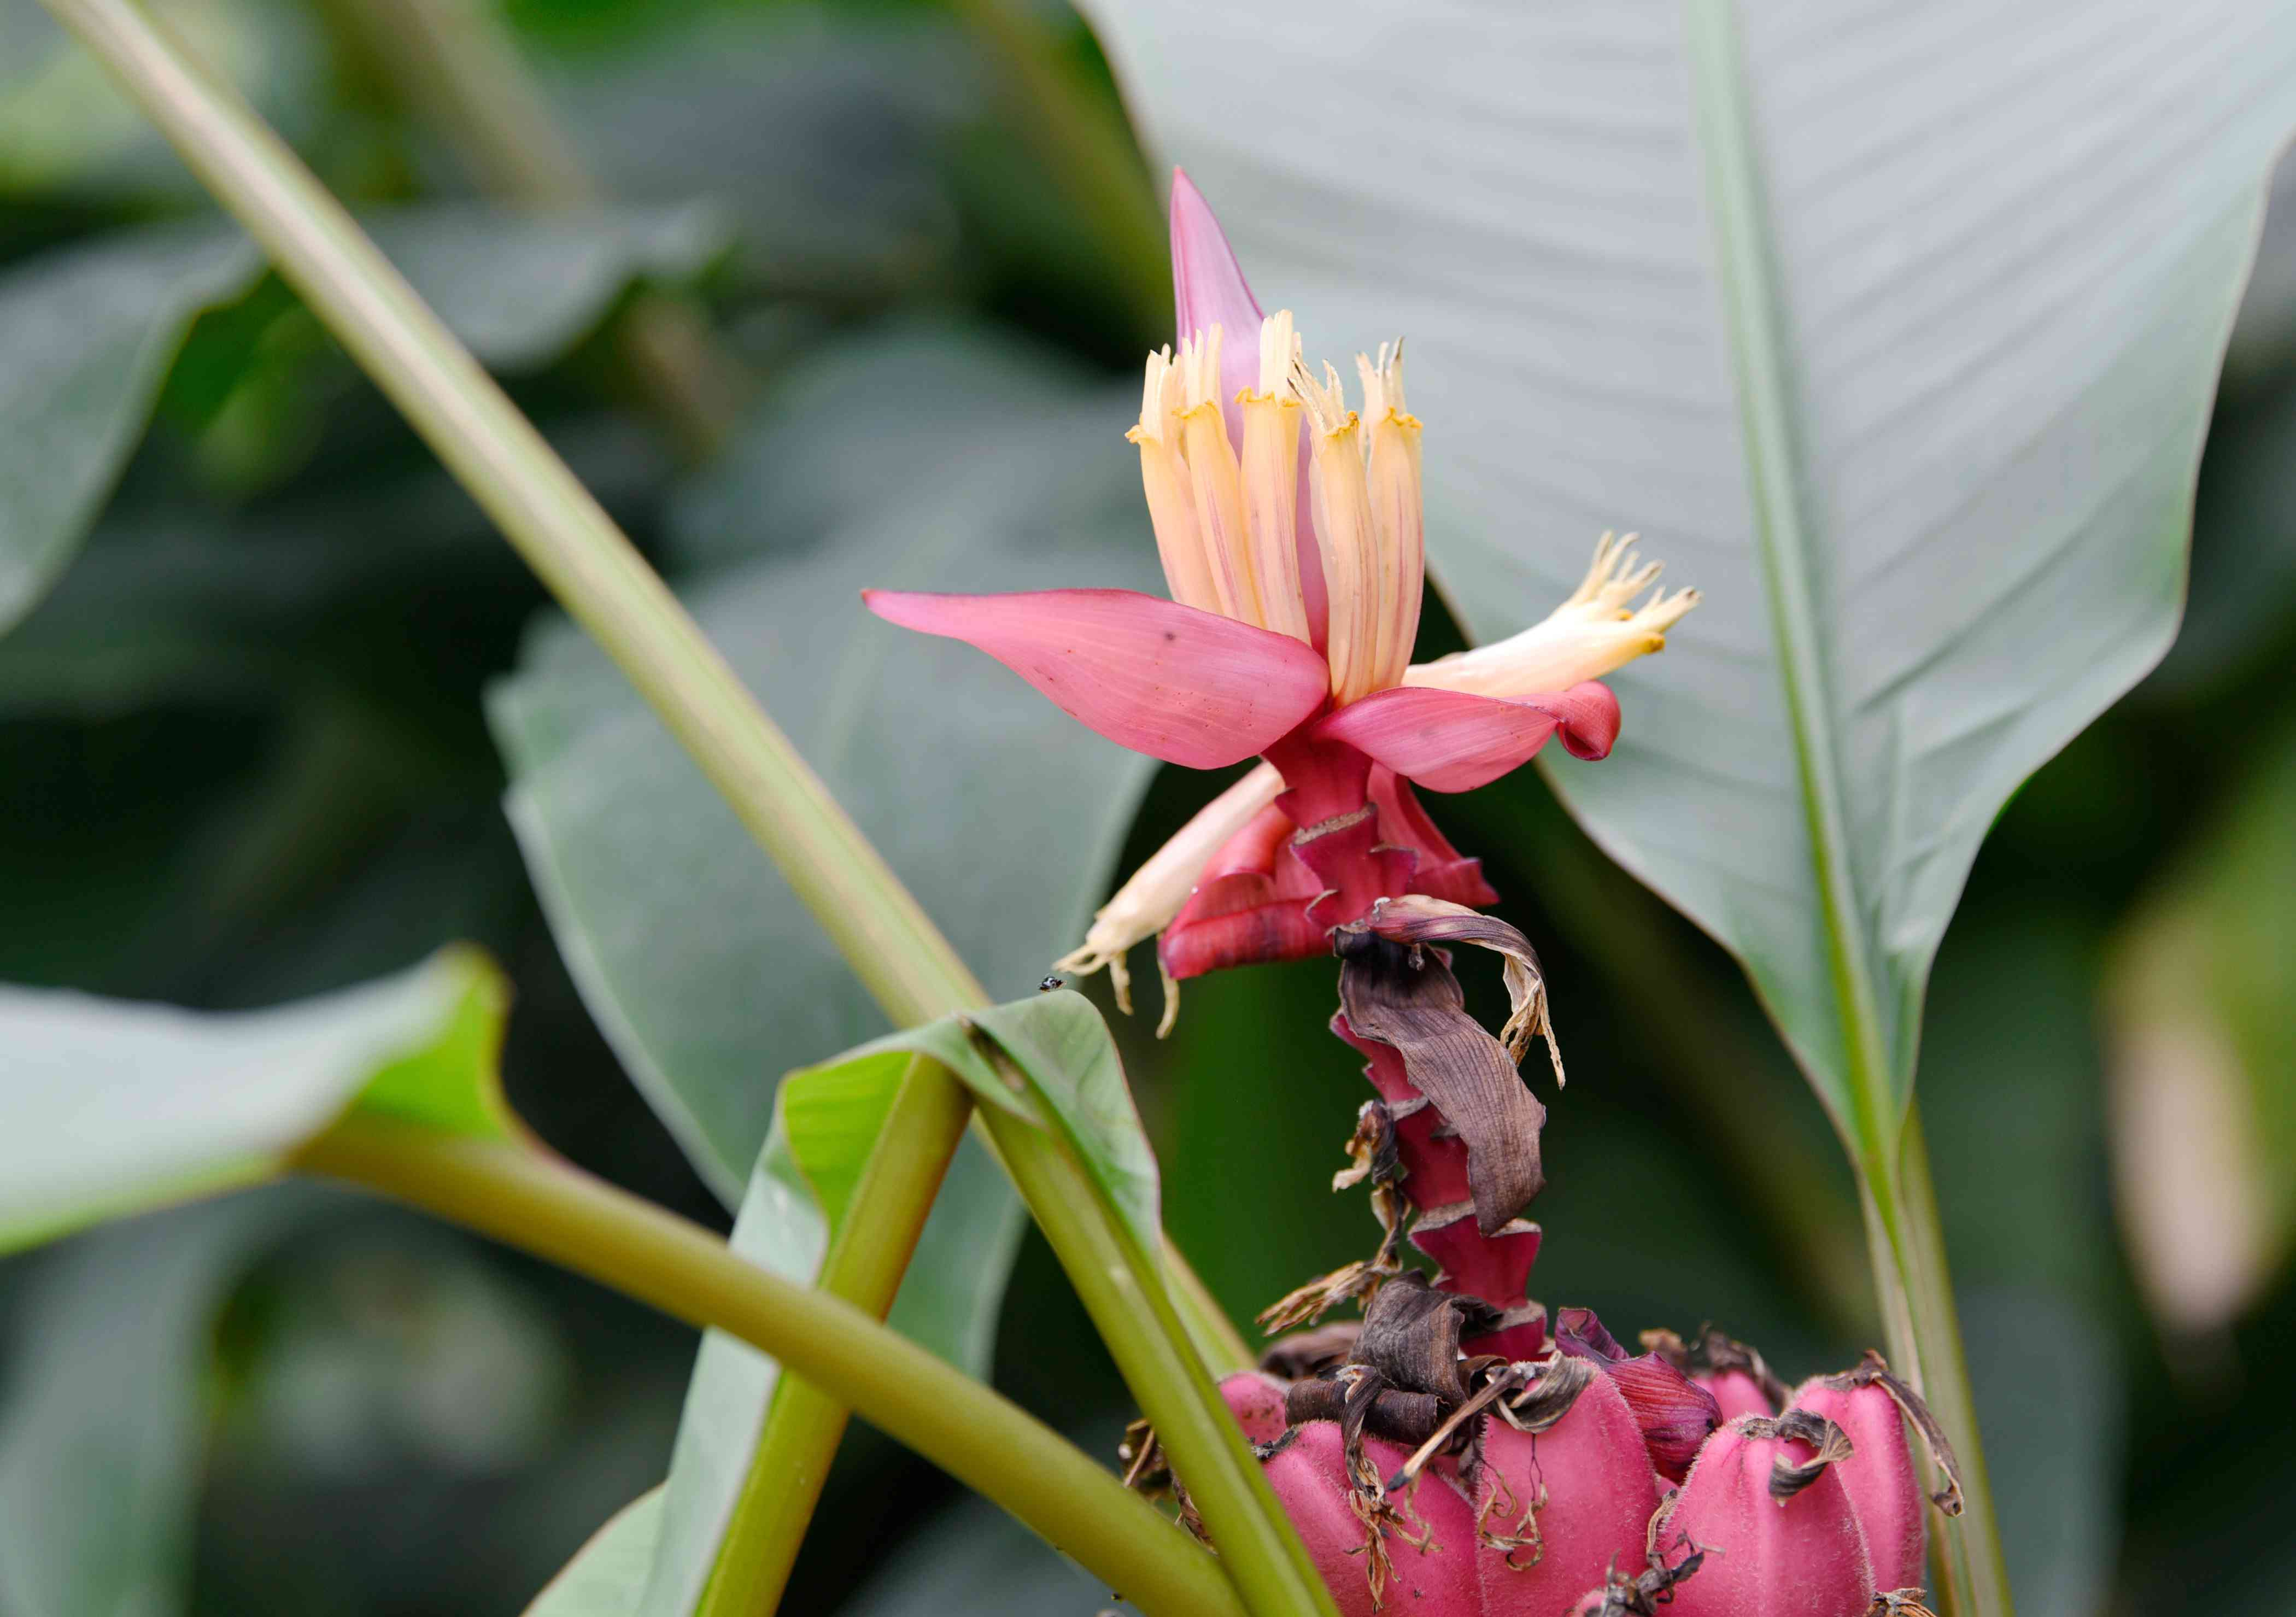 Velvet banana tree flower with cream-colored petals above small pink bananas